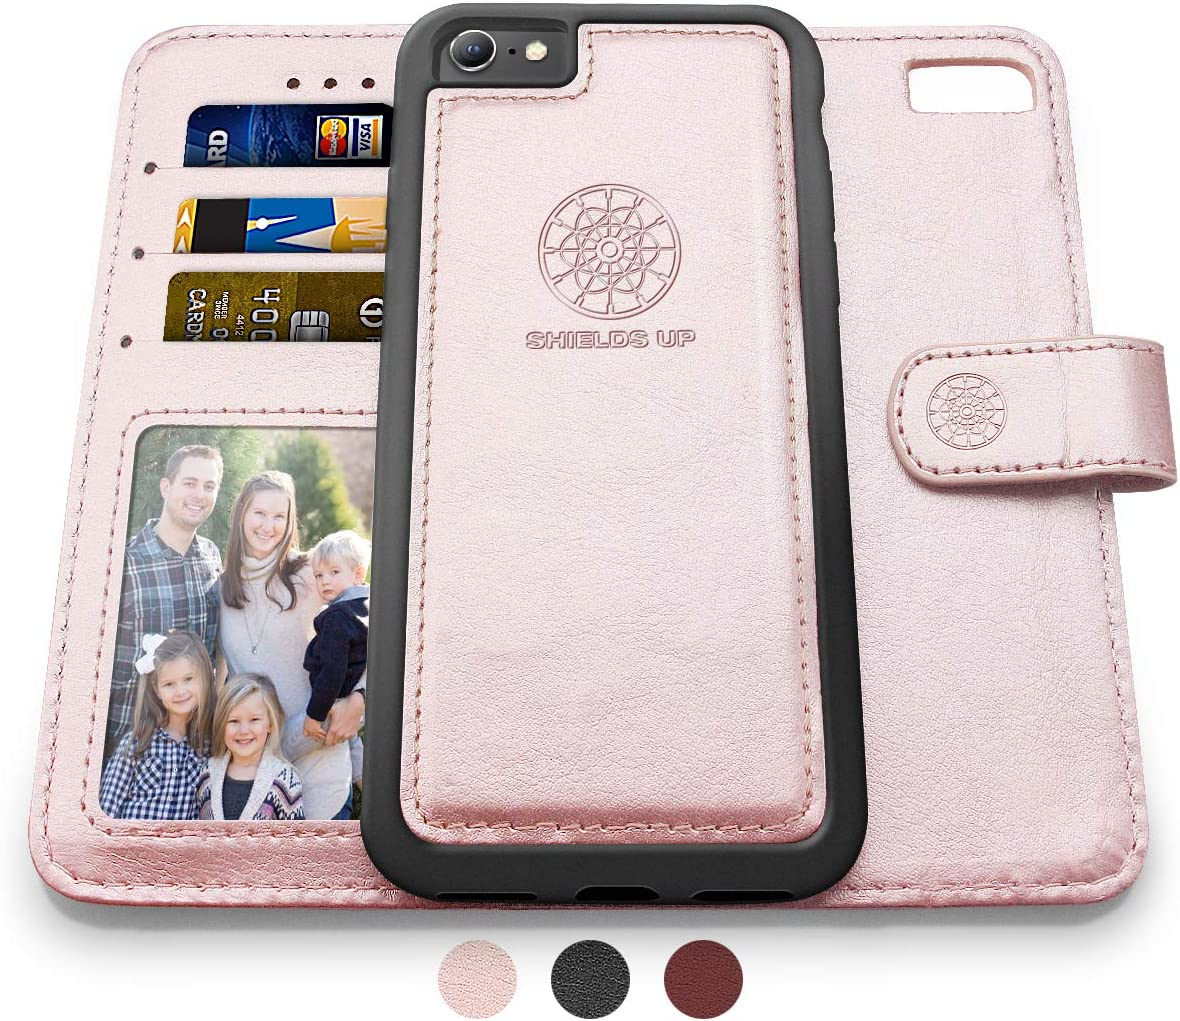 Shields Up iPhone 6S Case/iPhone 6 Case, [Detachable] Magnetic Wallet Case, Durable and Slim, Lightweight with Card Slots, [Vegan Leather] Cover for Apple iPhone 6S/6 (Rose Gold -iPhone 6S / 6)